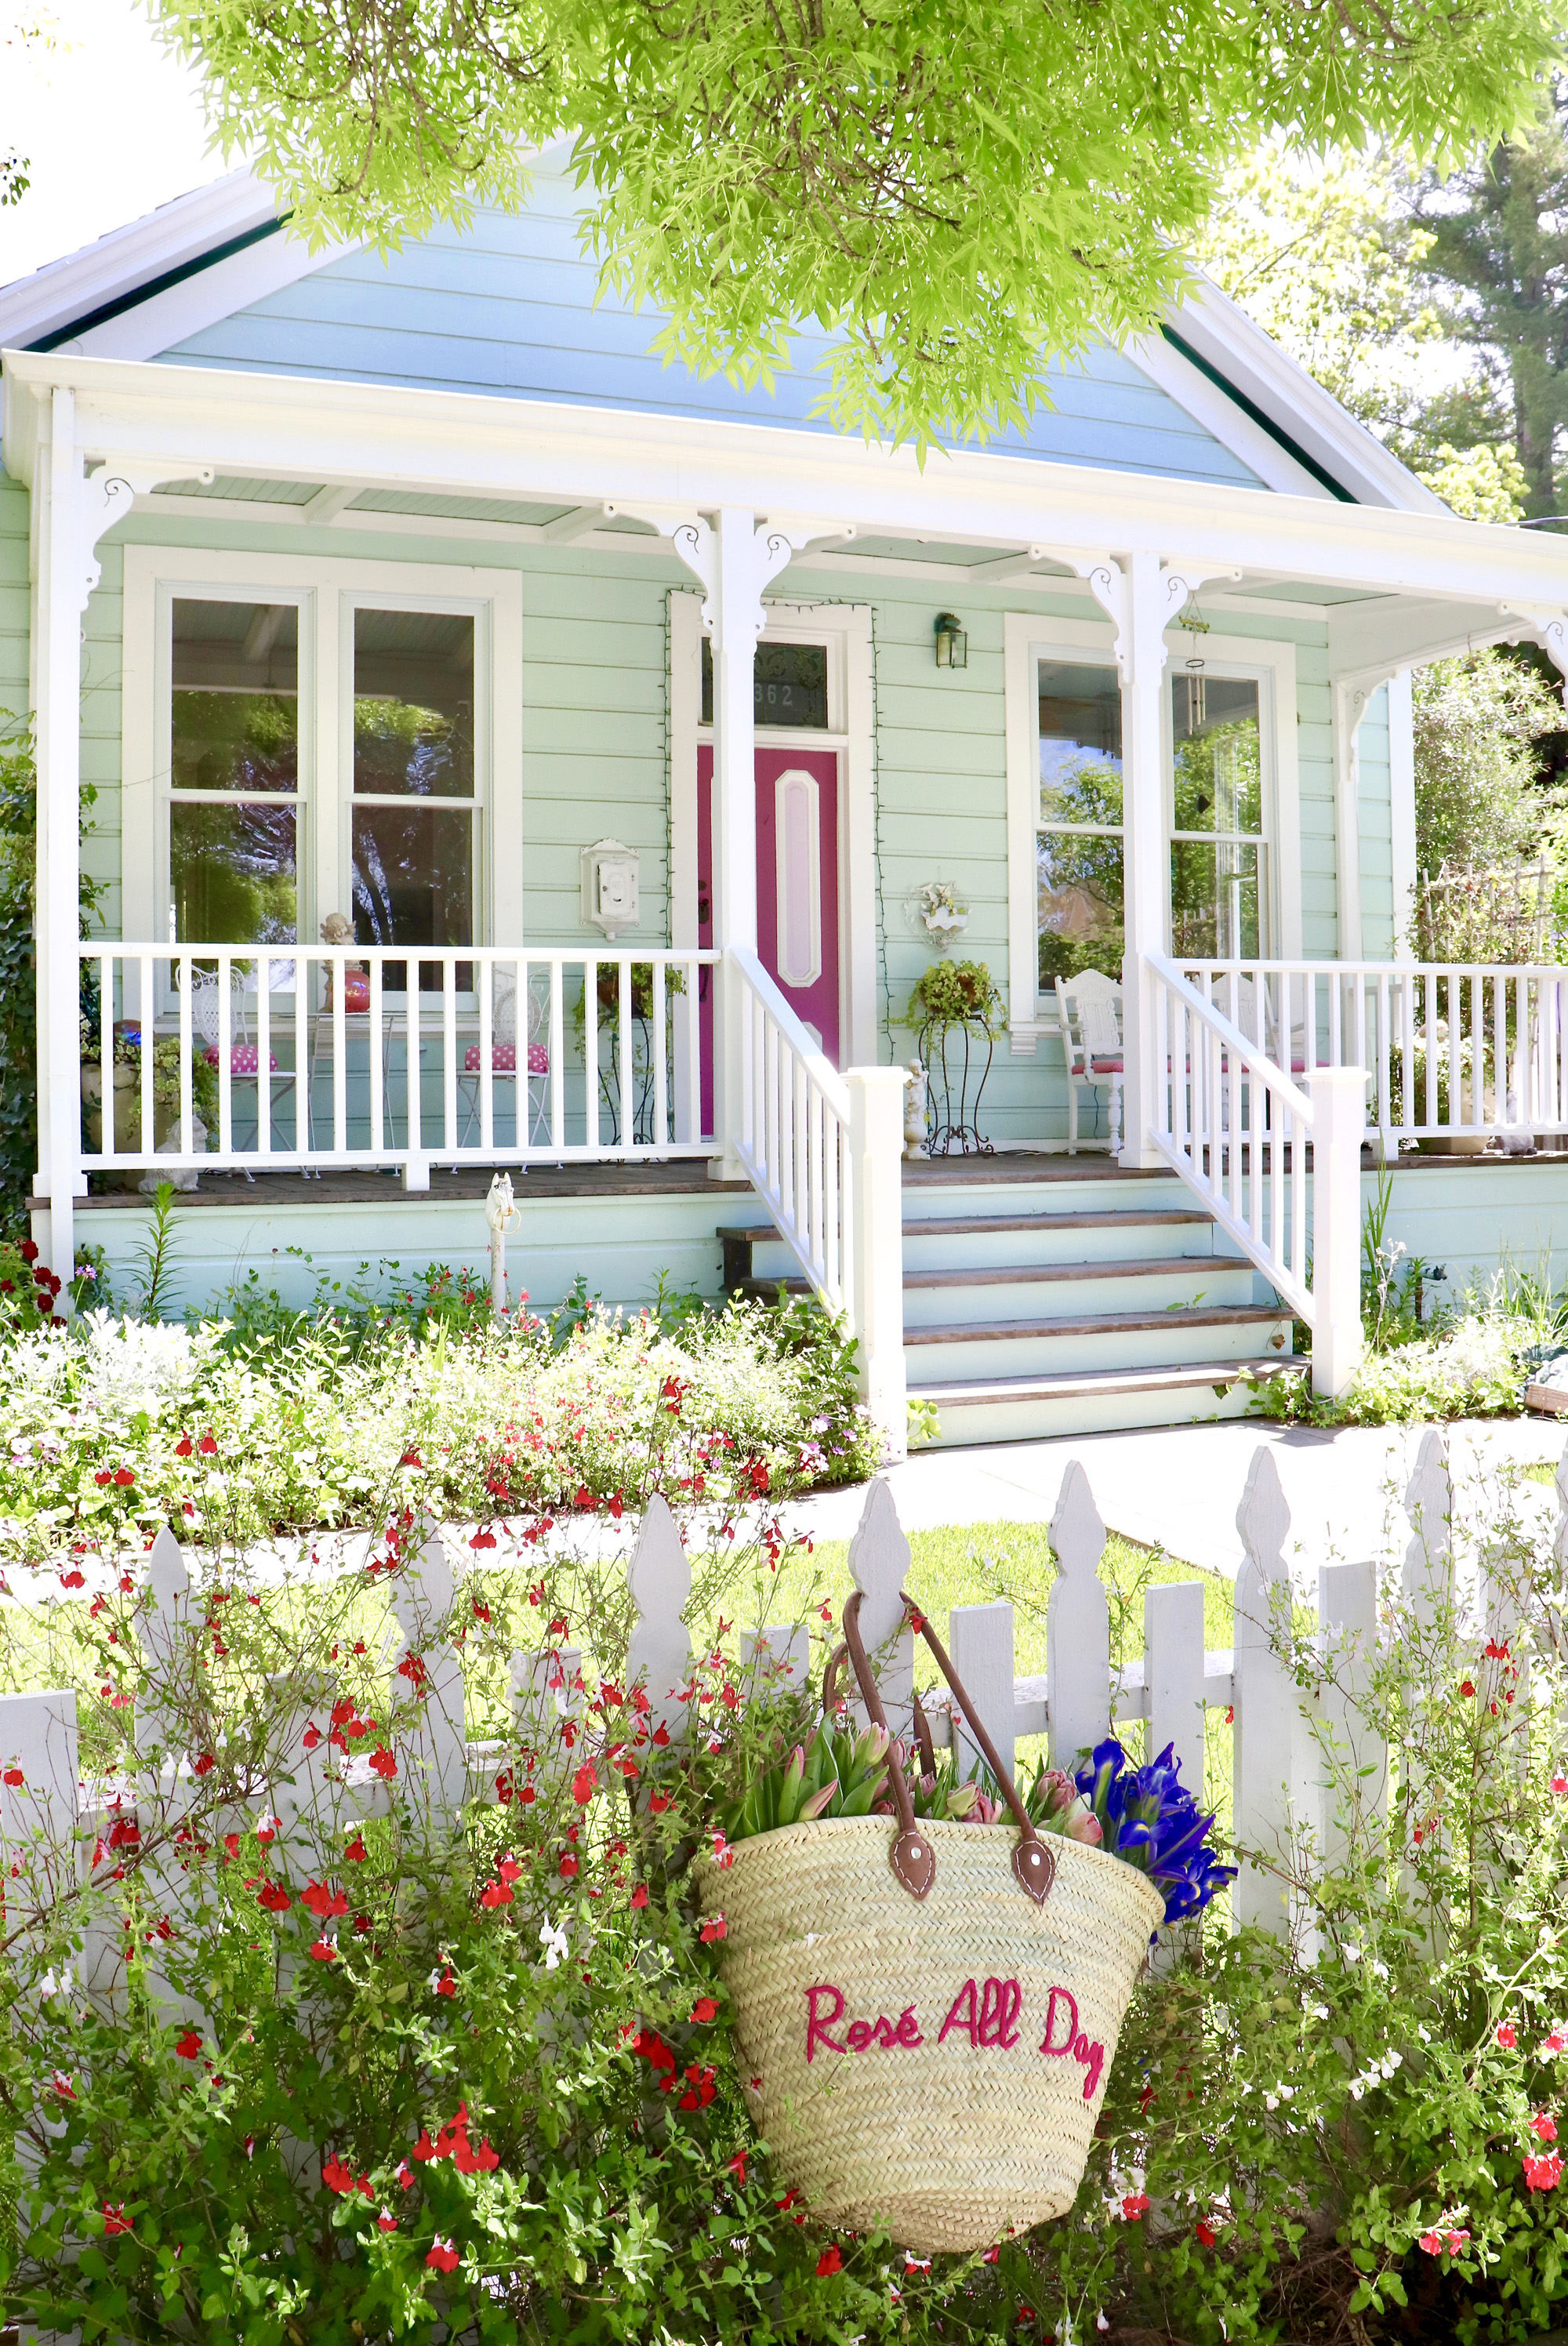 Cottages, Florals, and Sunshine - Oh My!